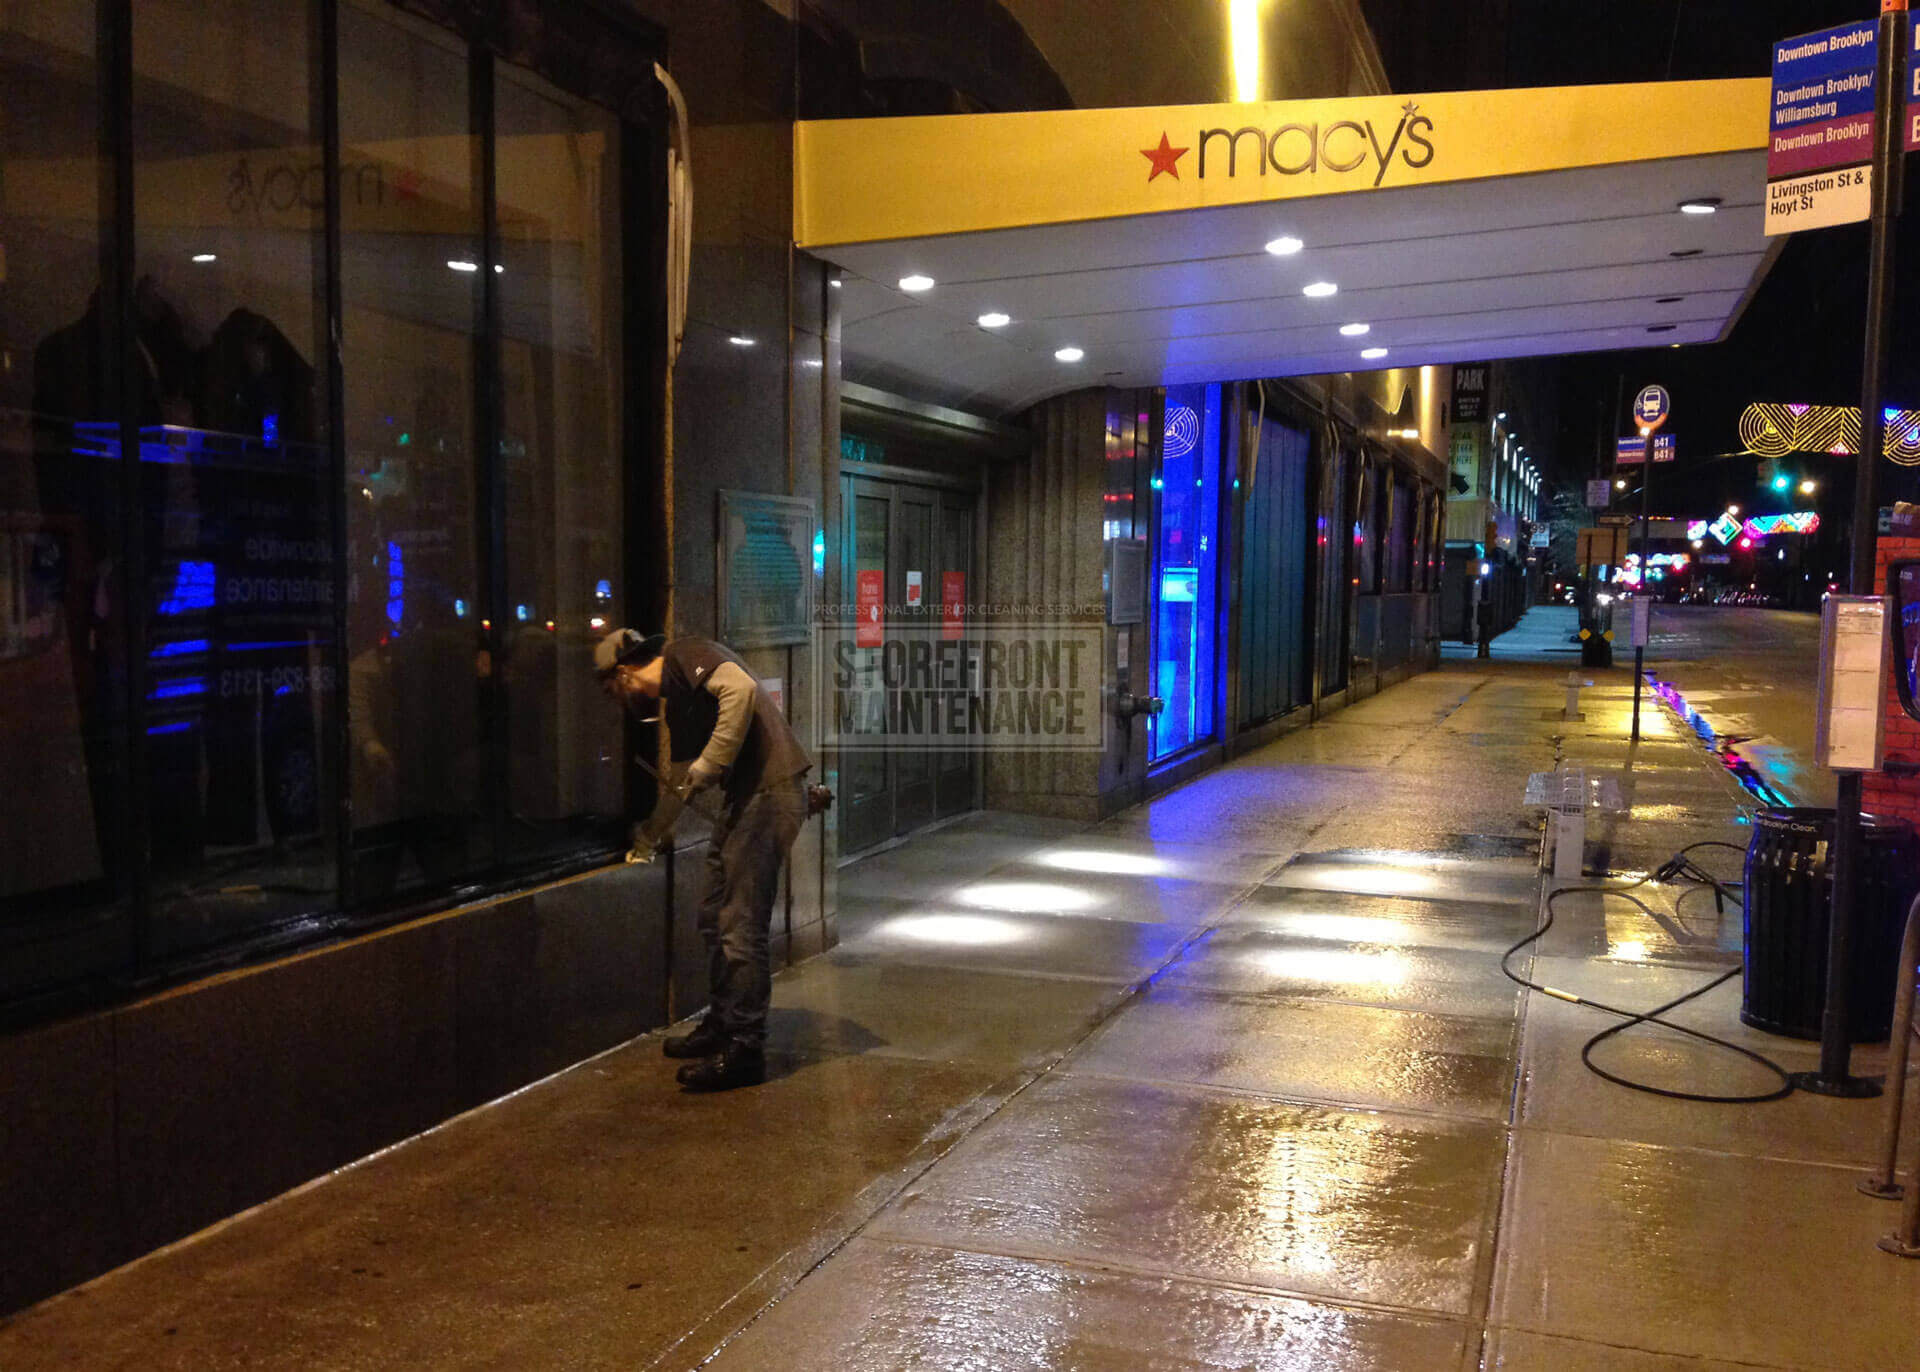 storefront-maintenance-macys-sidewalk-pressure-washing-building-cleaning